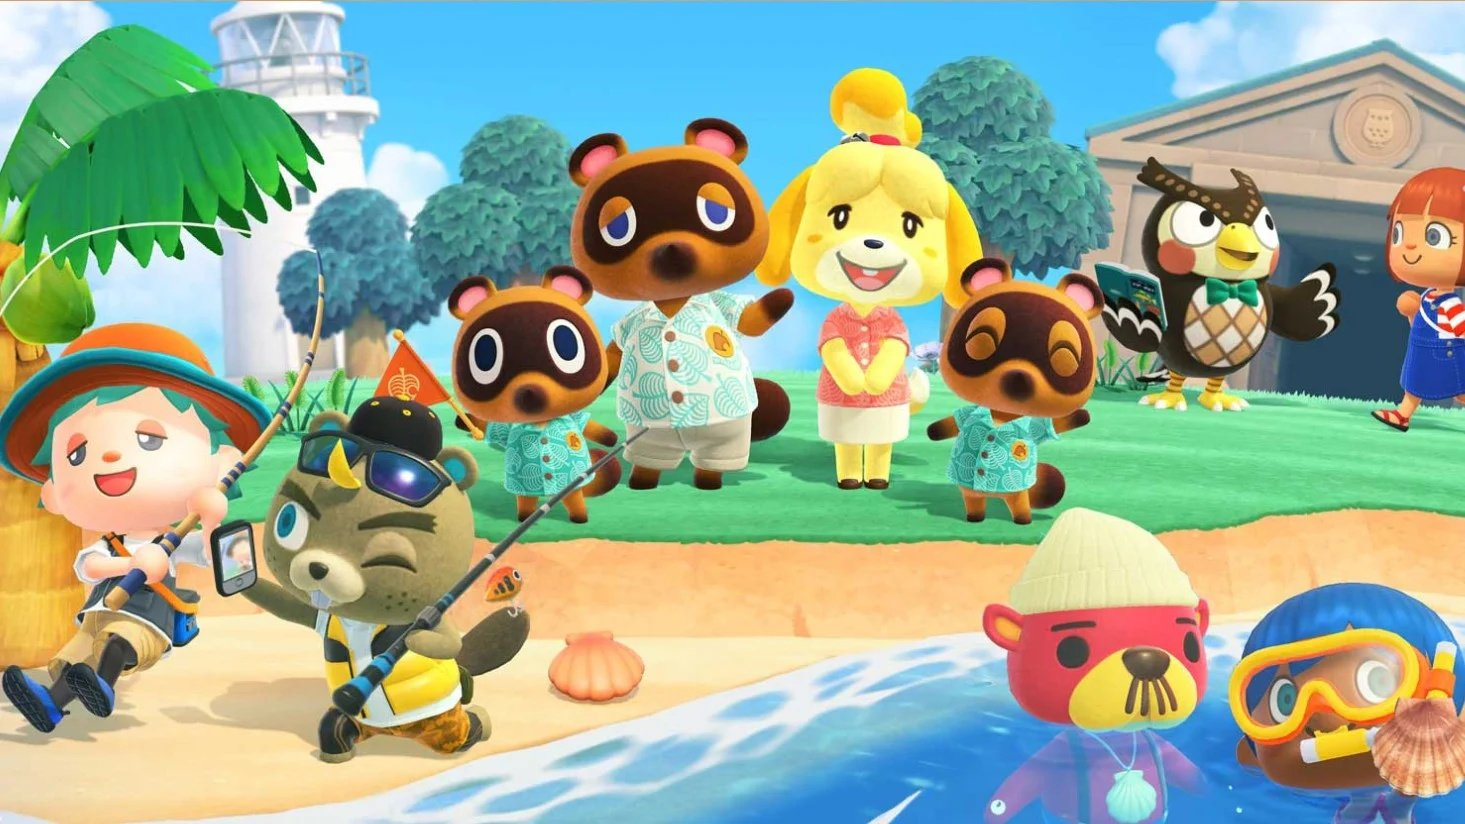 Animal Crossing: New Horizons Update 1.11.0 Patch Notes - Seasonal Events,  Fixes And More - Nintendo Life